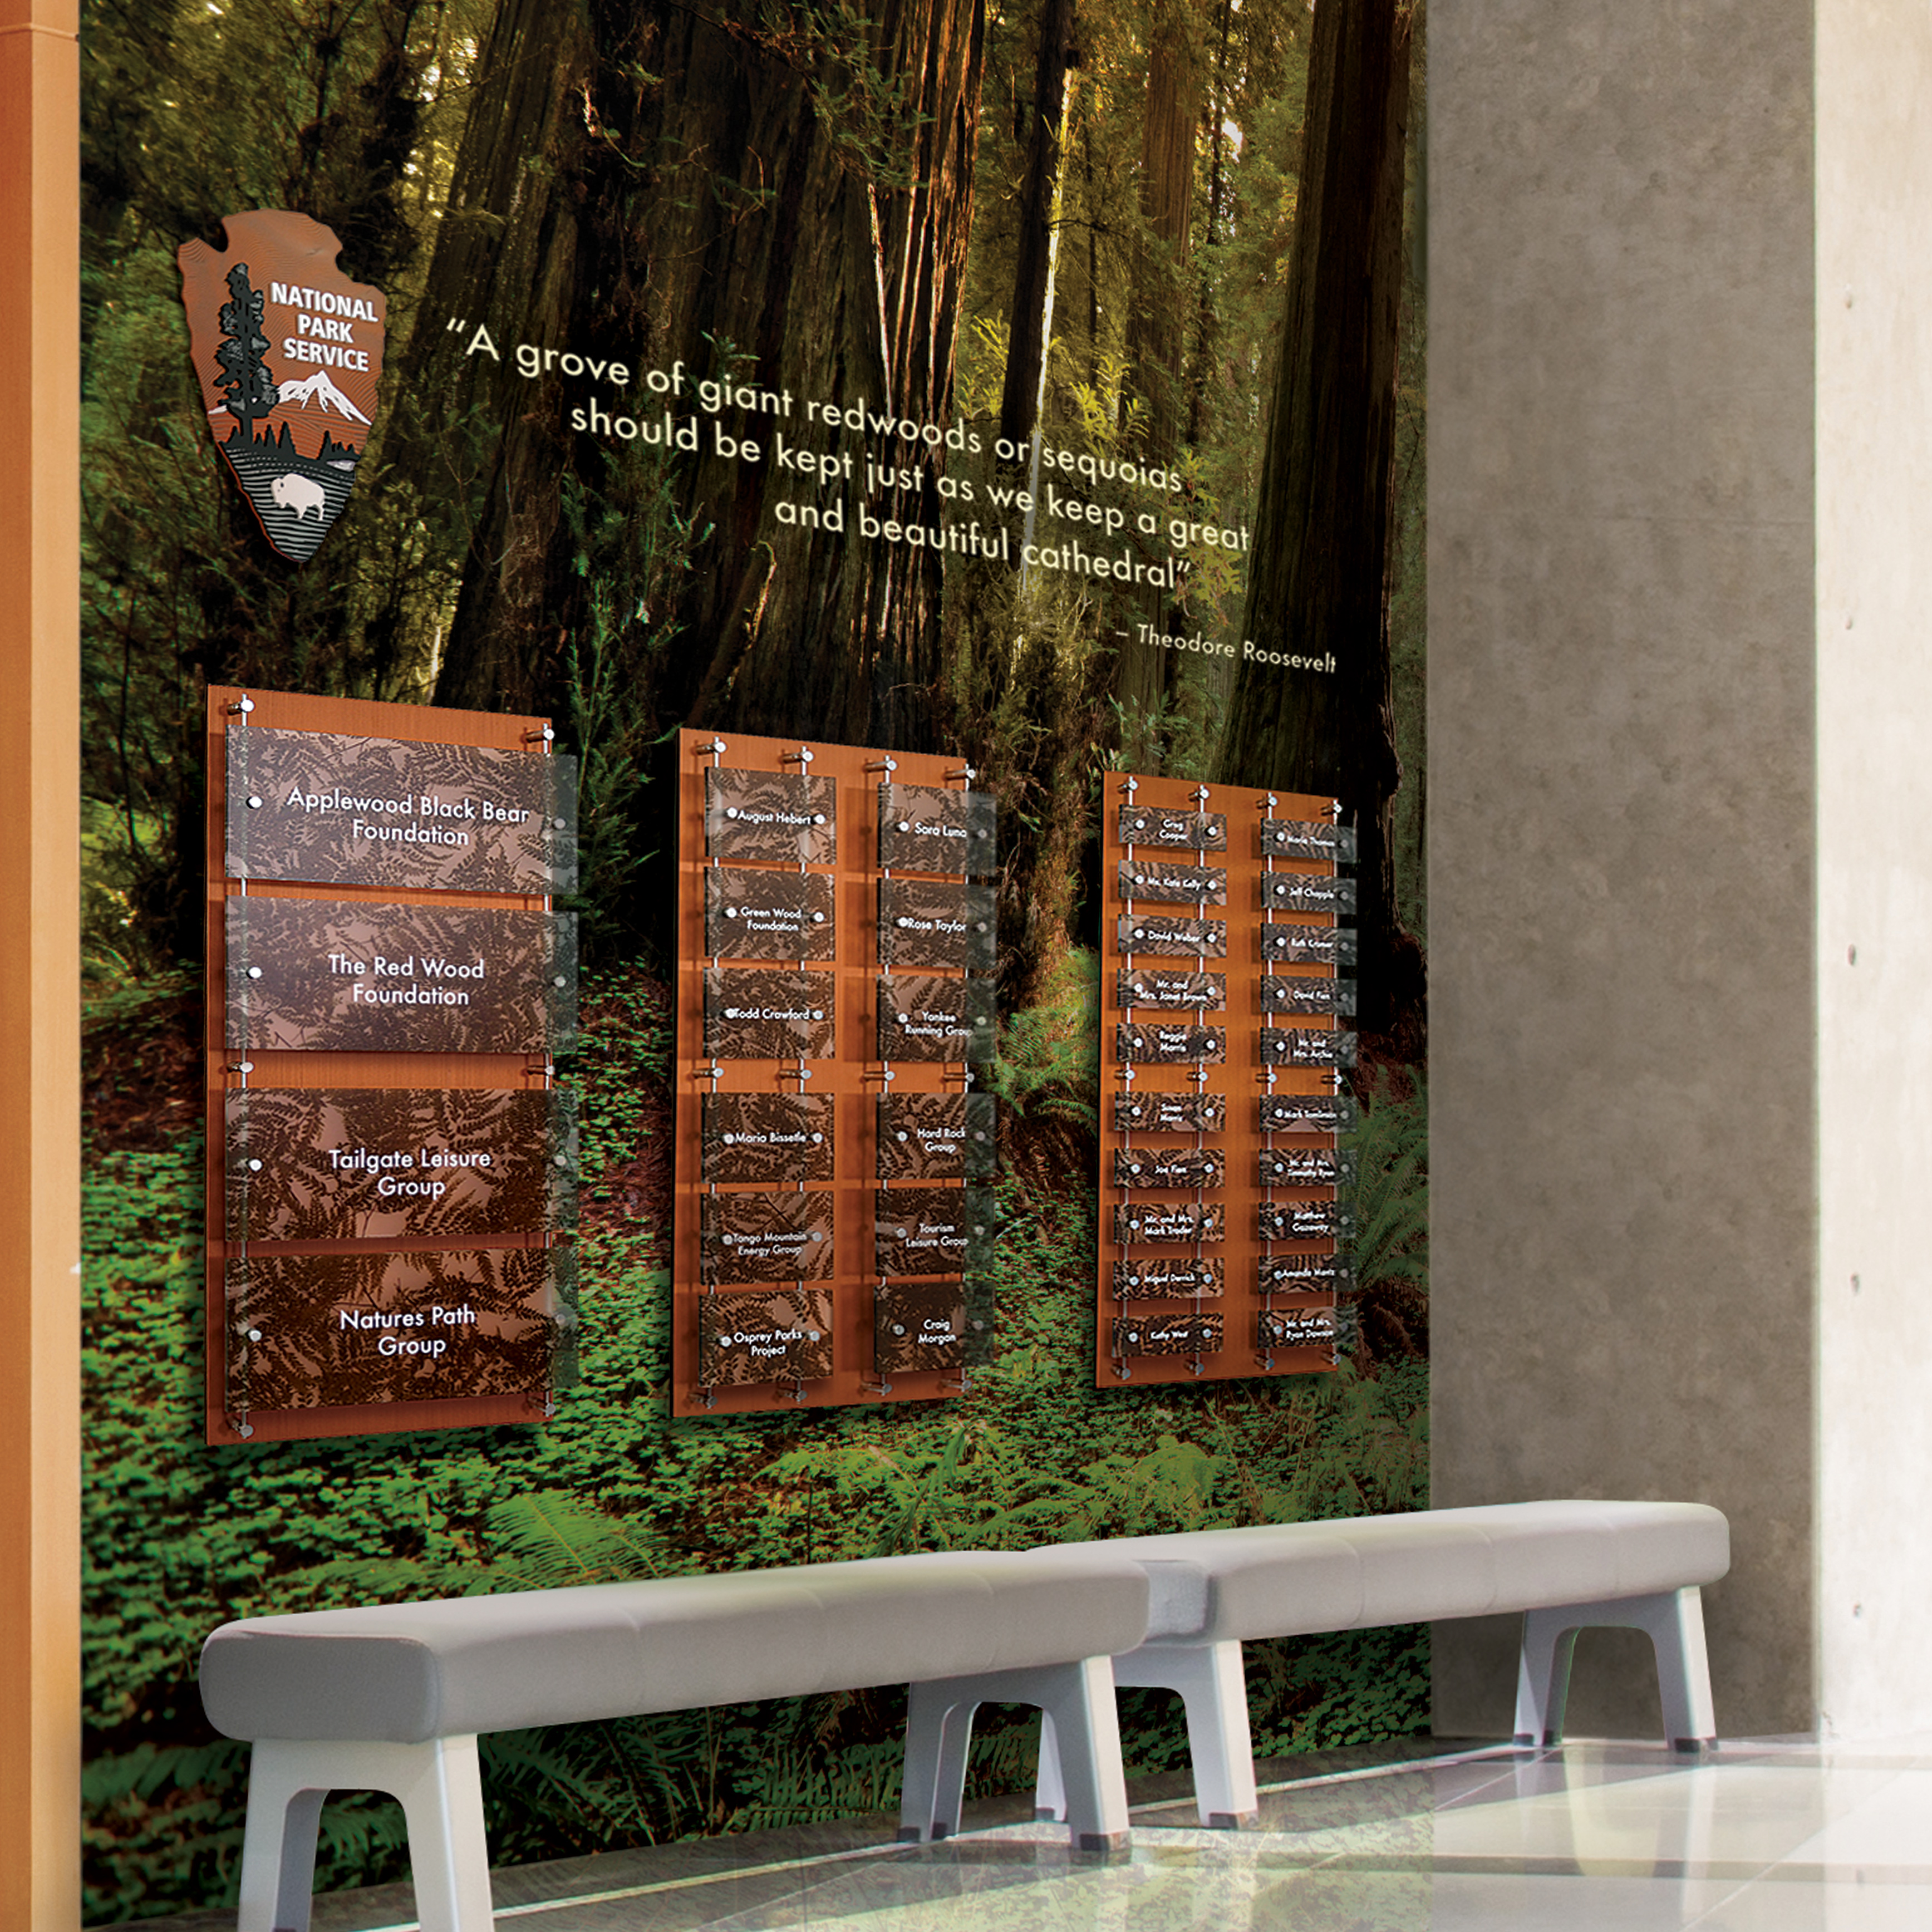 Photo of Applaud recognition wall at Redwood national Park